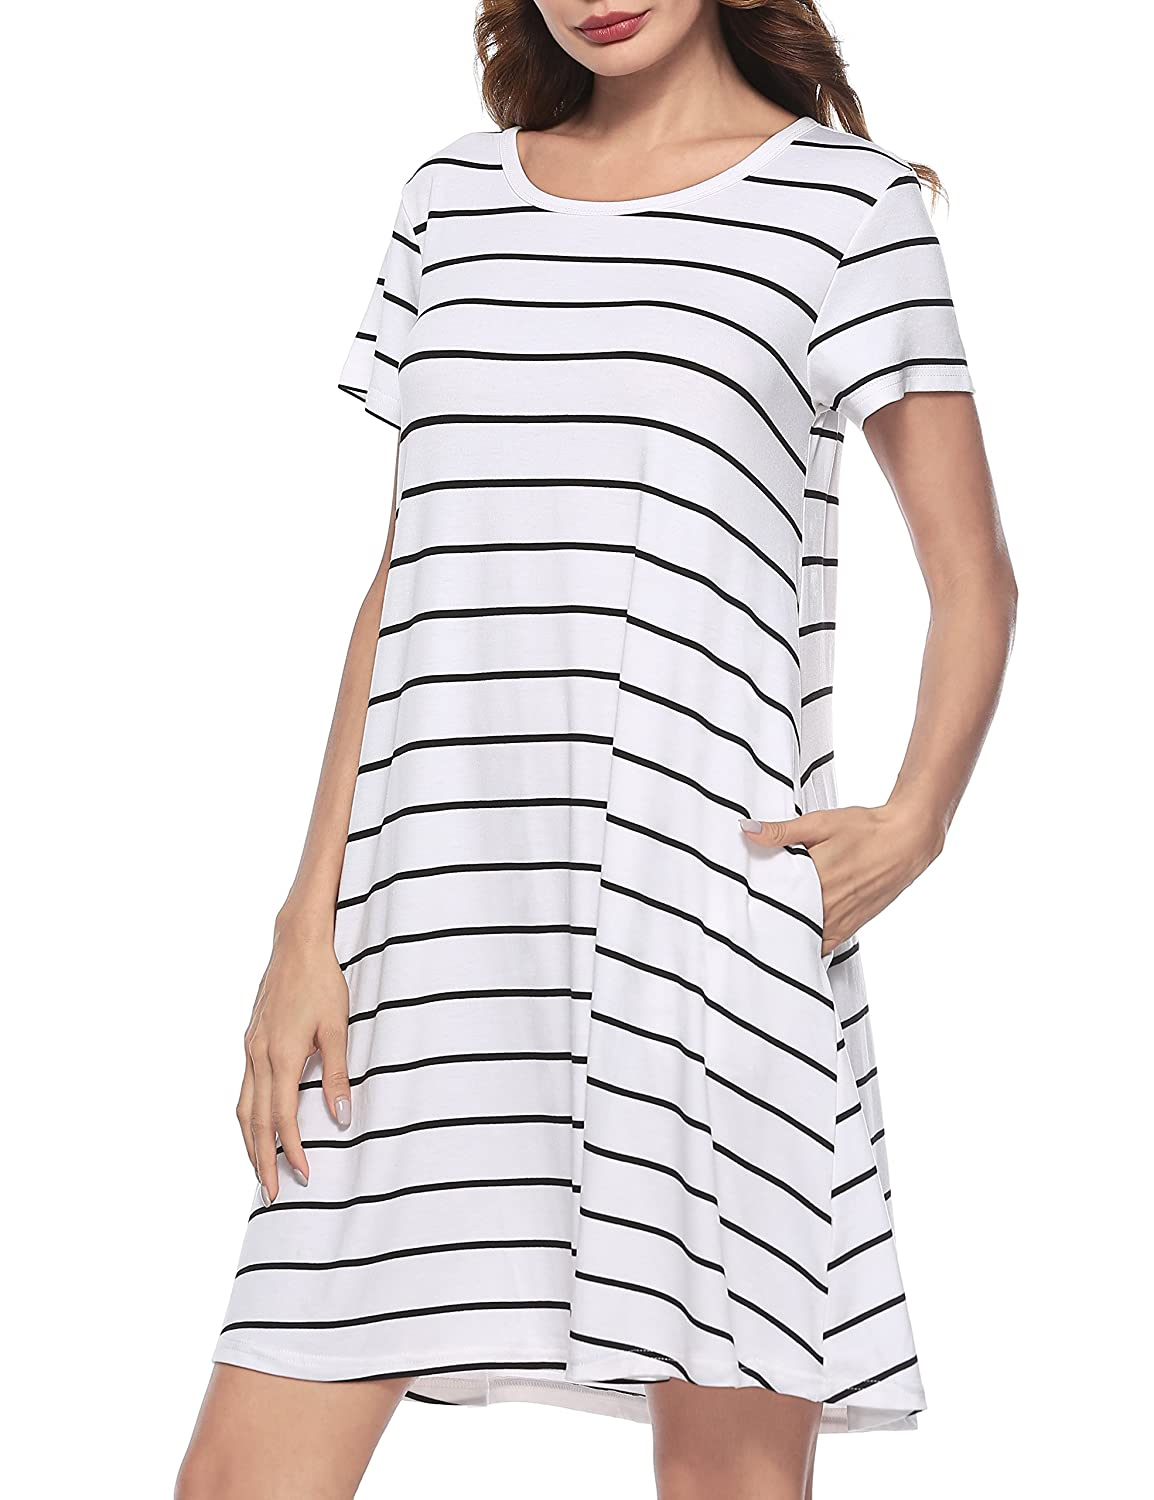 Girl2Queen Summer Womens Short Sleeve Swing Tunic Plaid T-Shirt Dresses with Pockets GQ-stripped-white-xl